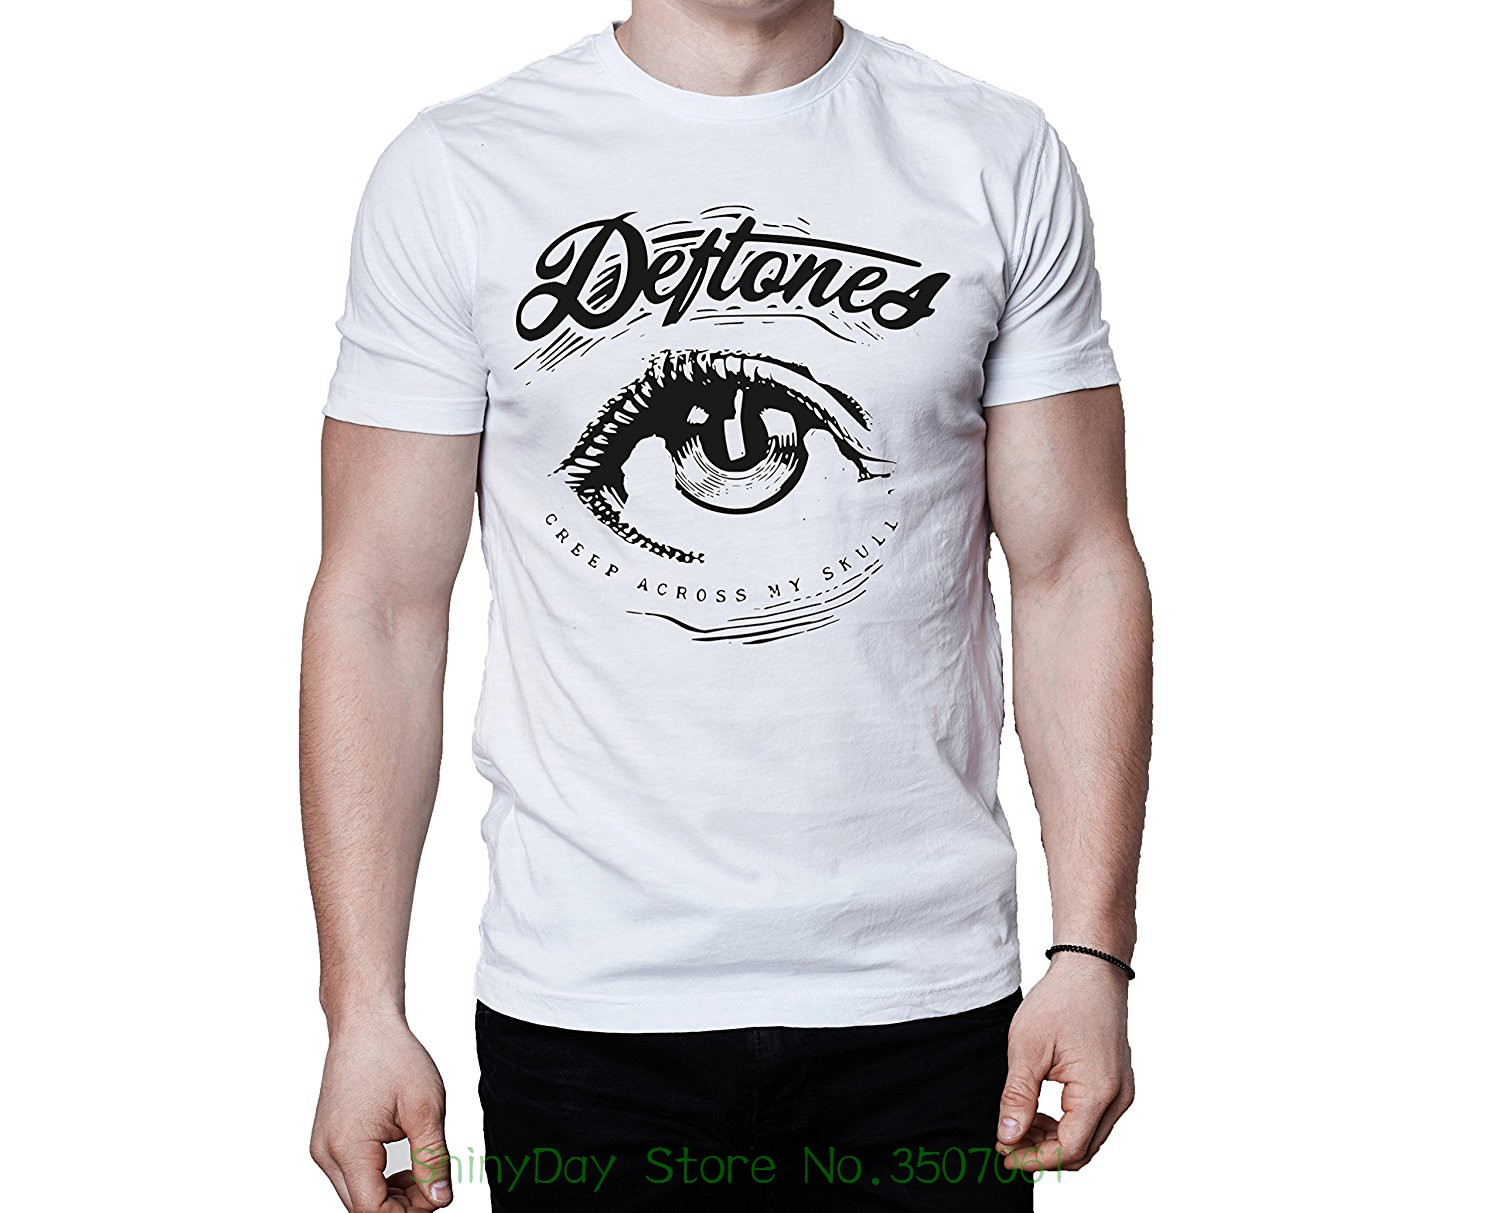 81ea9f328 New Fashion For Men Short Sleeve Deftones Band Creep Across My Skull Eye  Logo White T-shirt